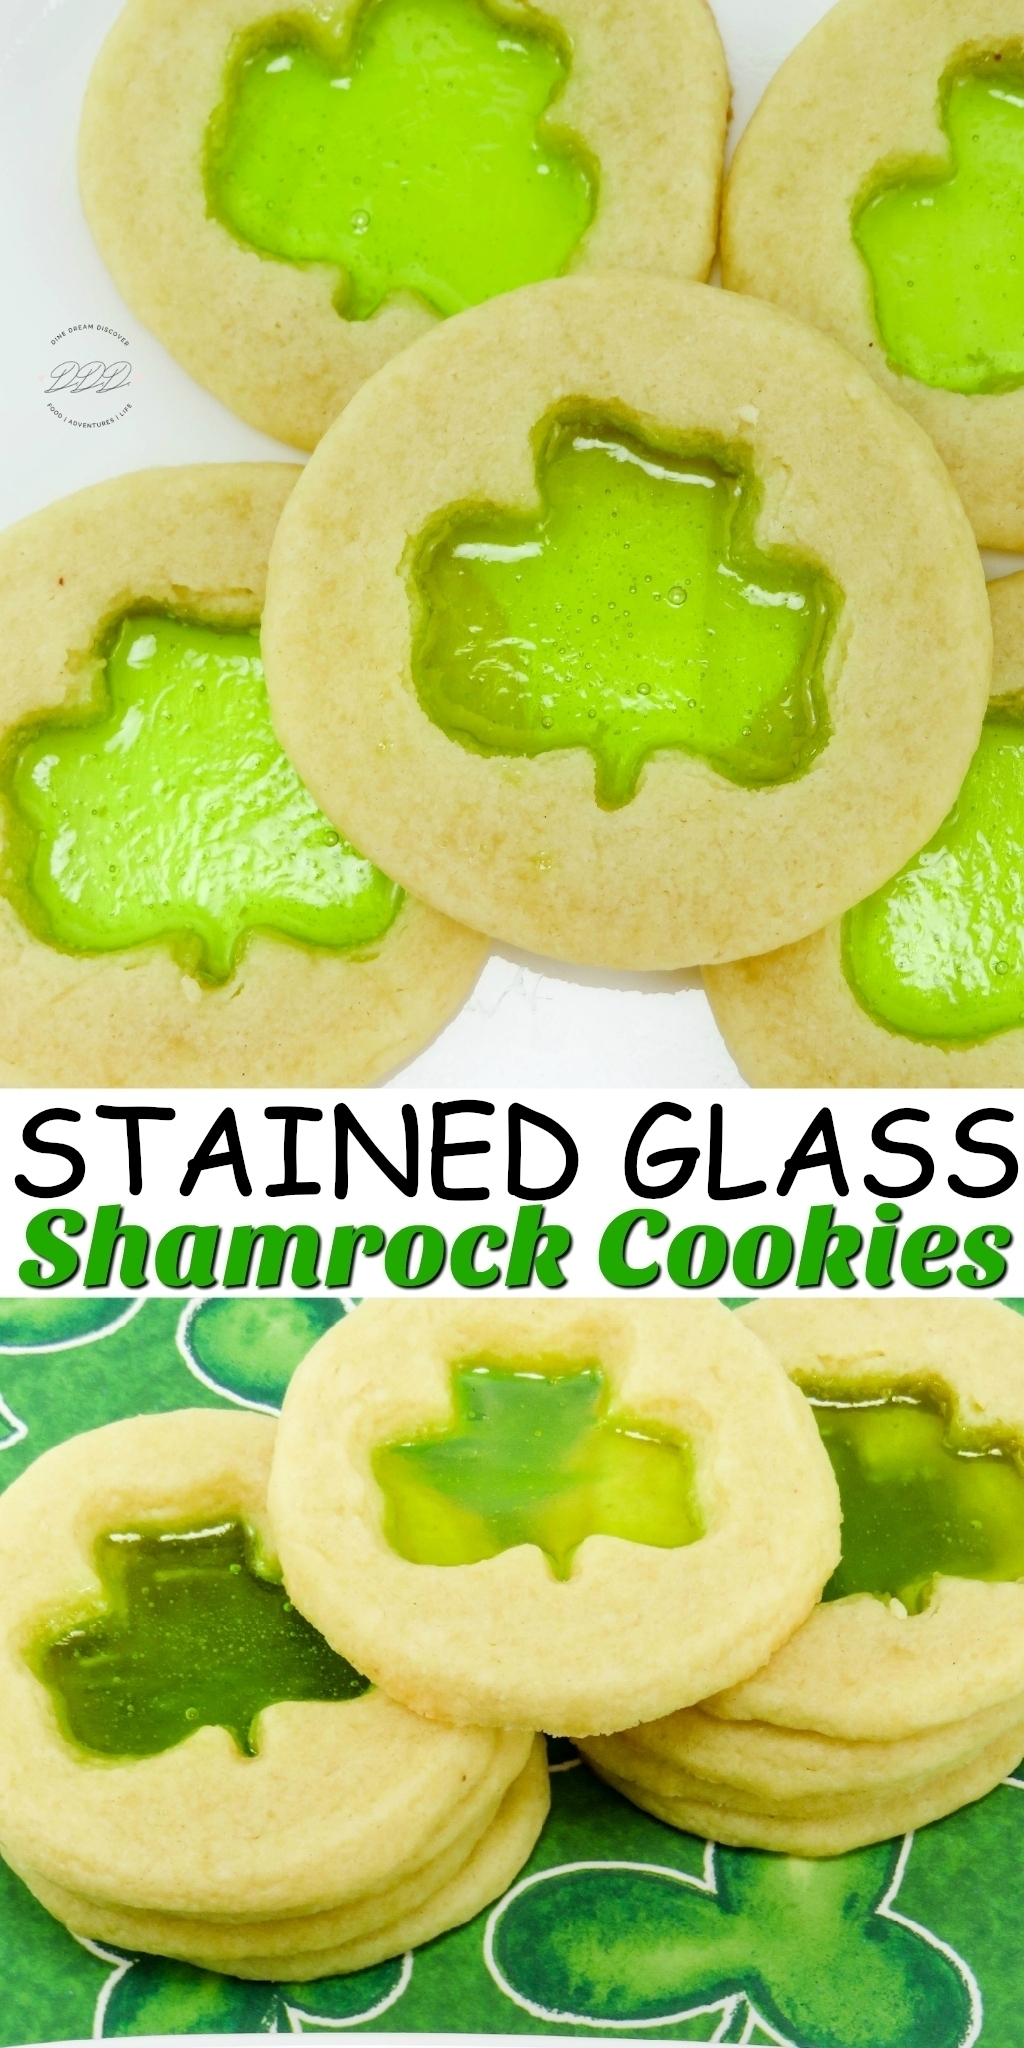 STAINED GLASS SHAMROCK COOKIES RECIPE